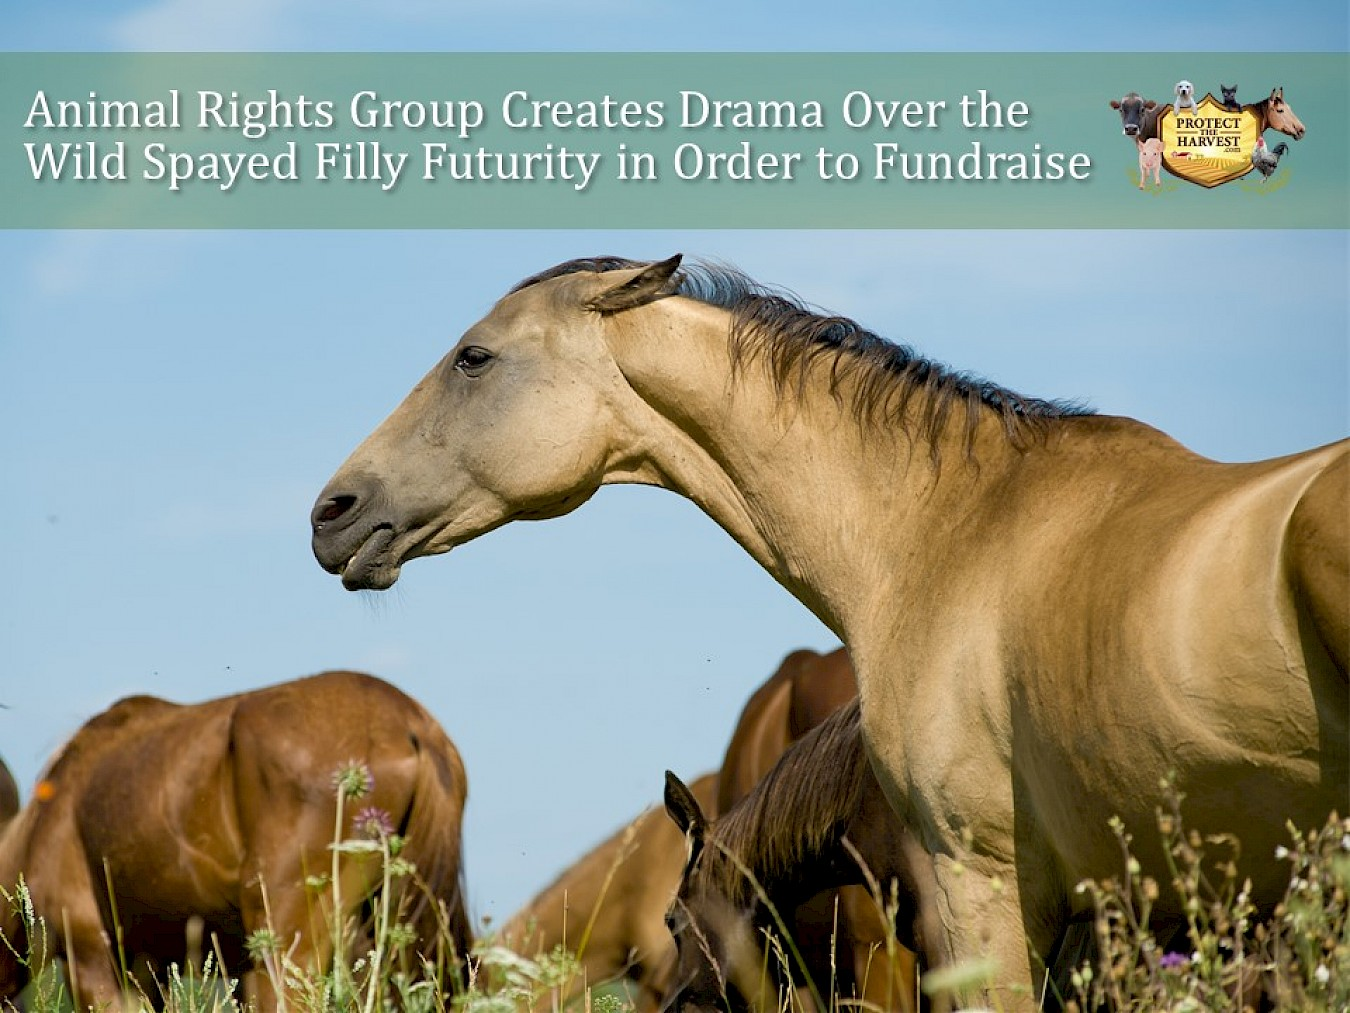 Animal Rights Group Creates Drama Over Wild Spayed Filly Futurity in Order to Fundraise